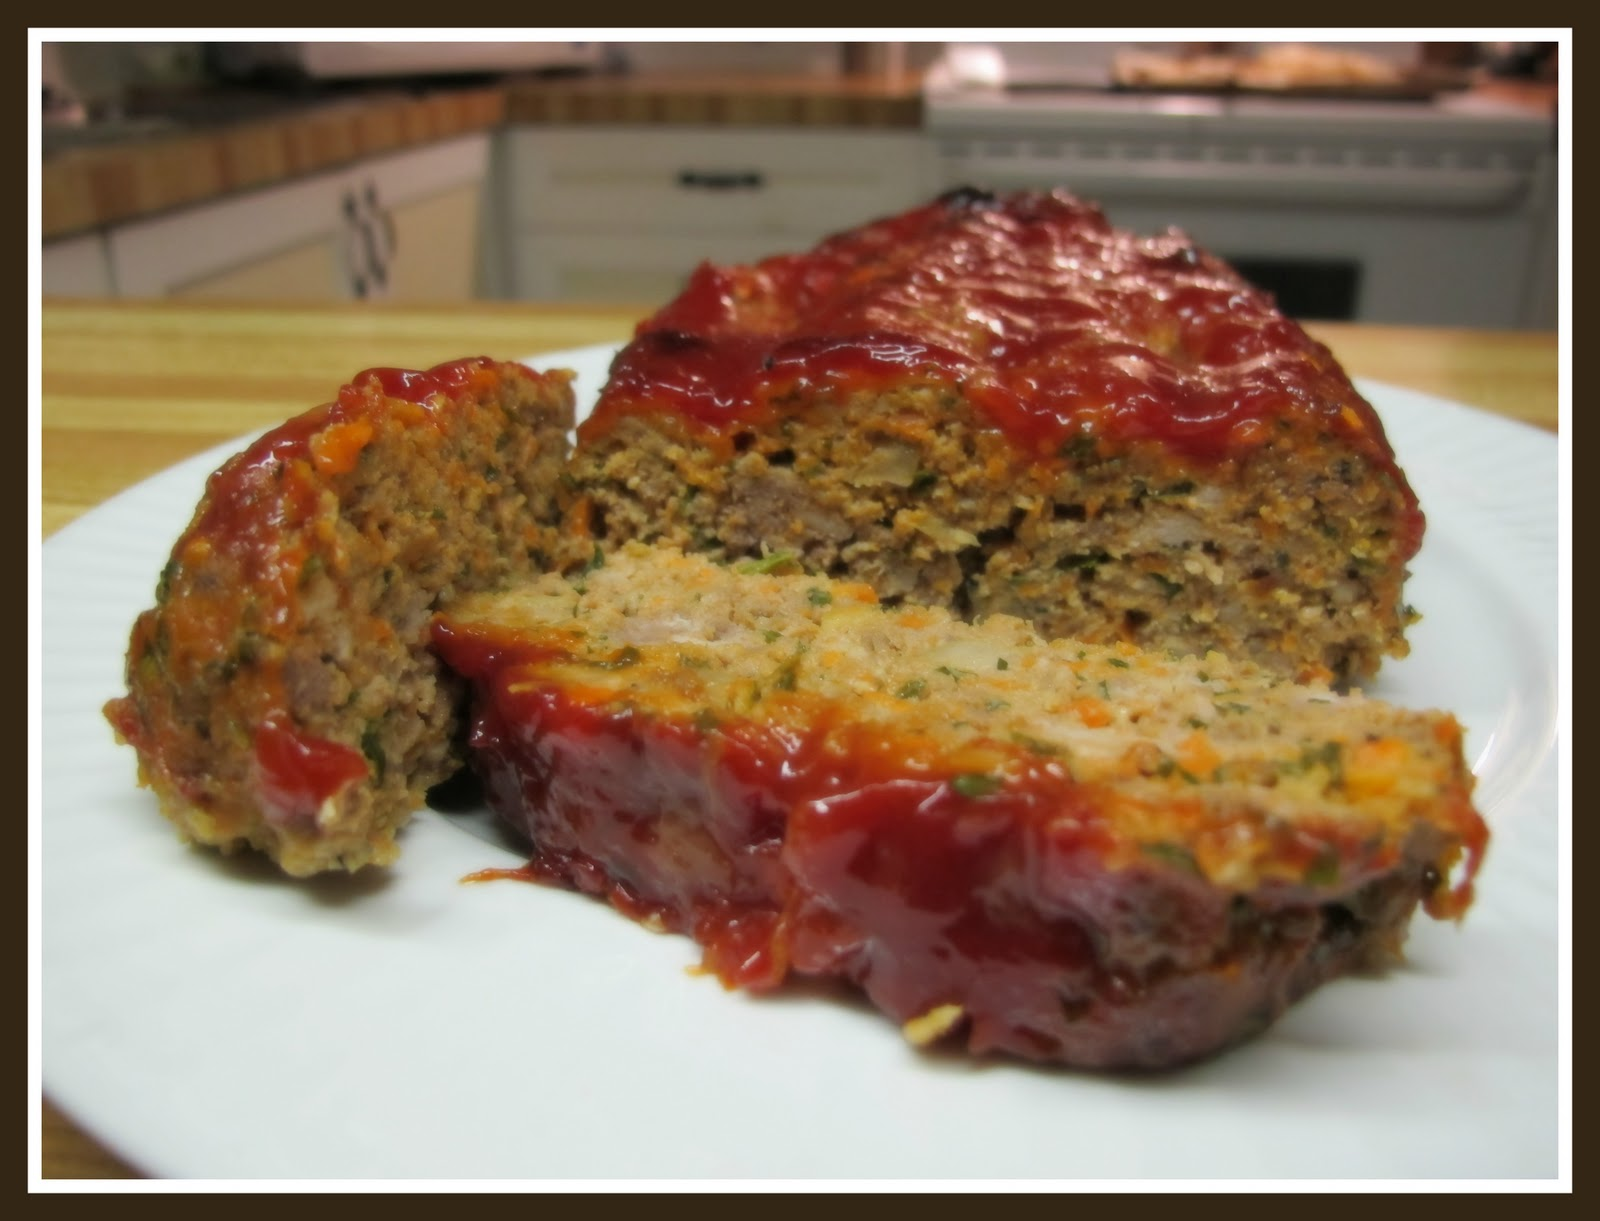 meatloaf 101 recipe meatloaf meatloaf 101 meatloaf 101 meatloaf 101 ...